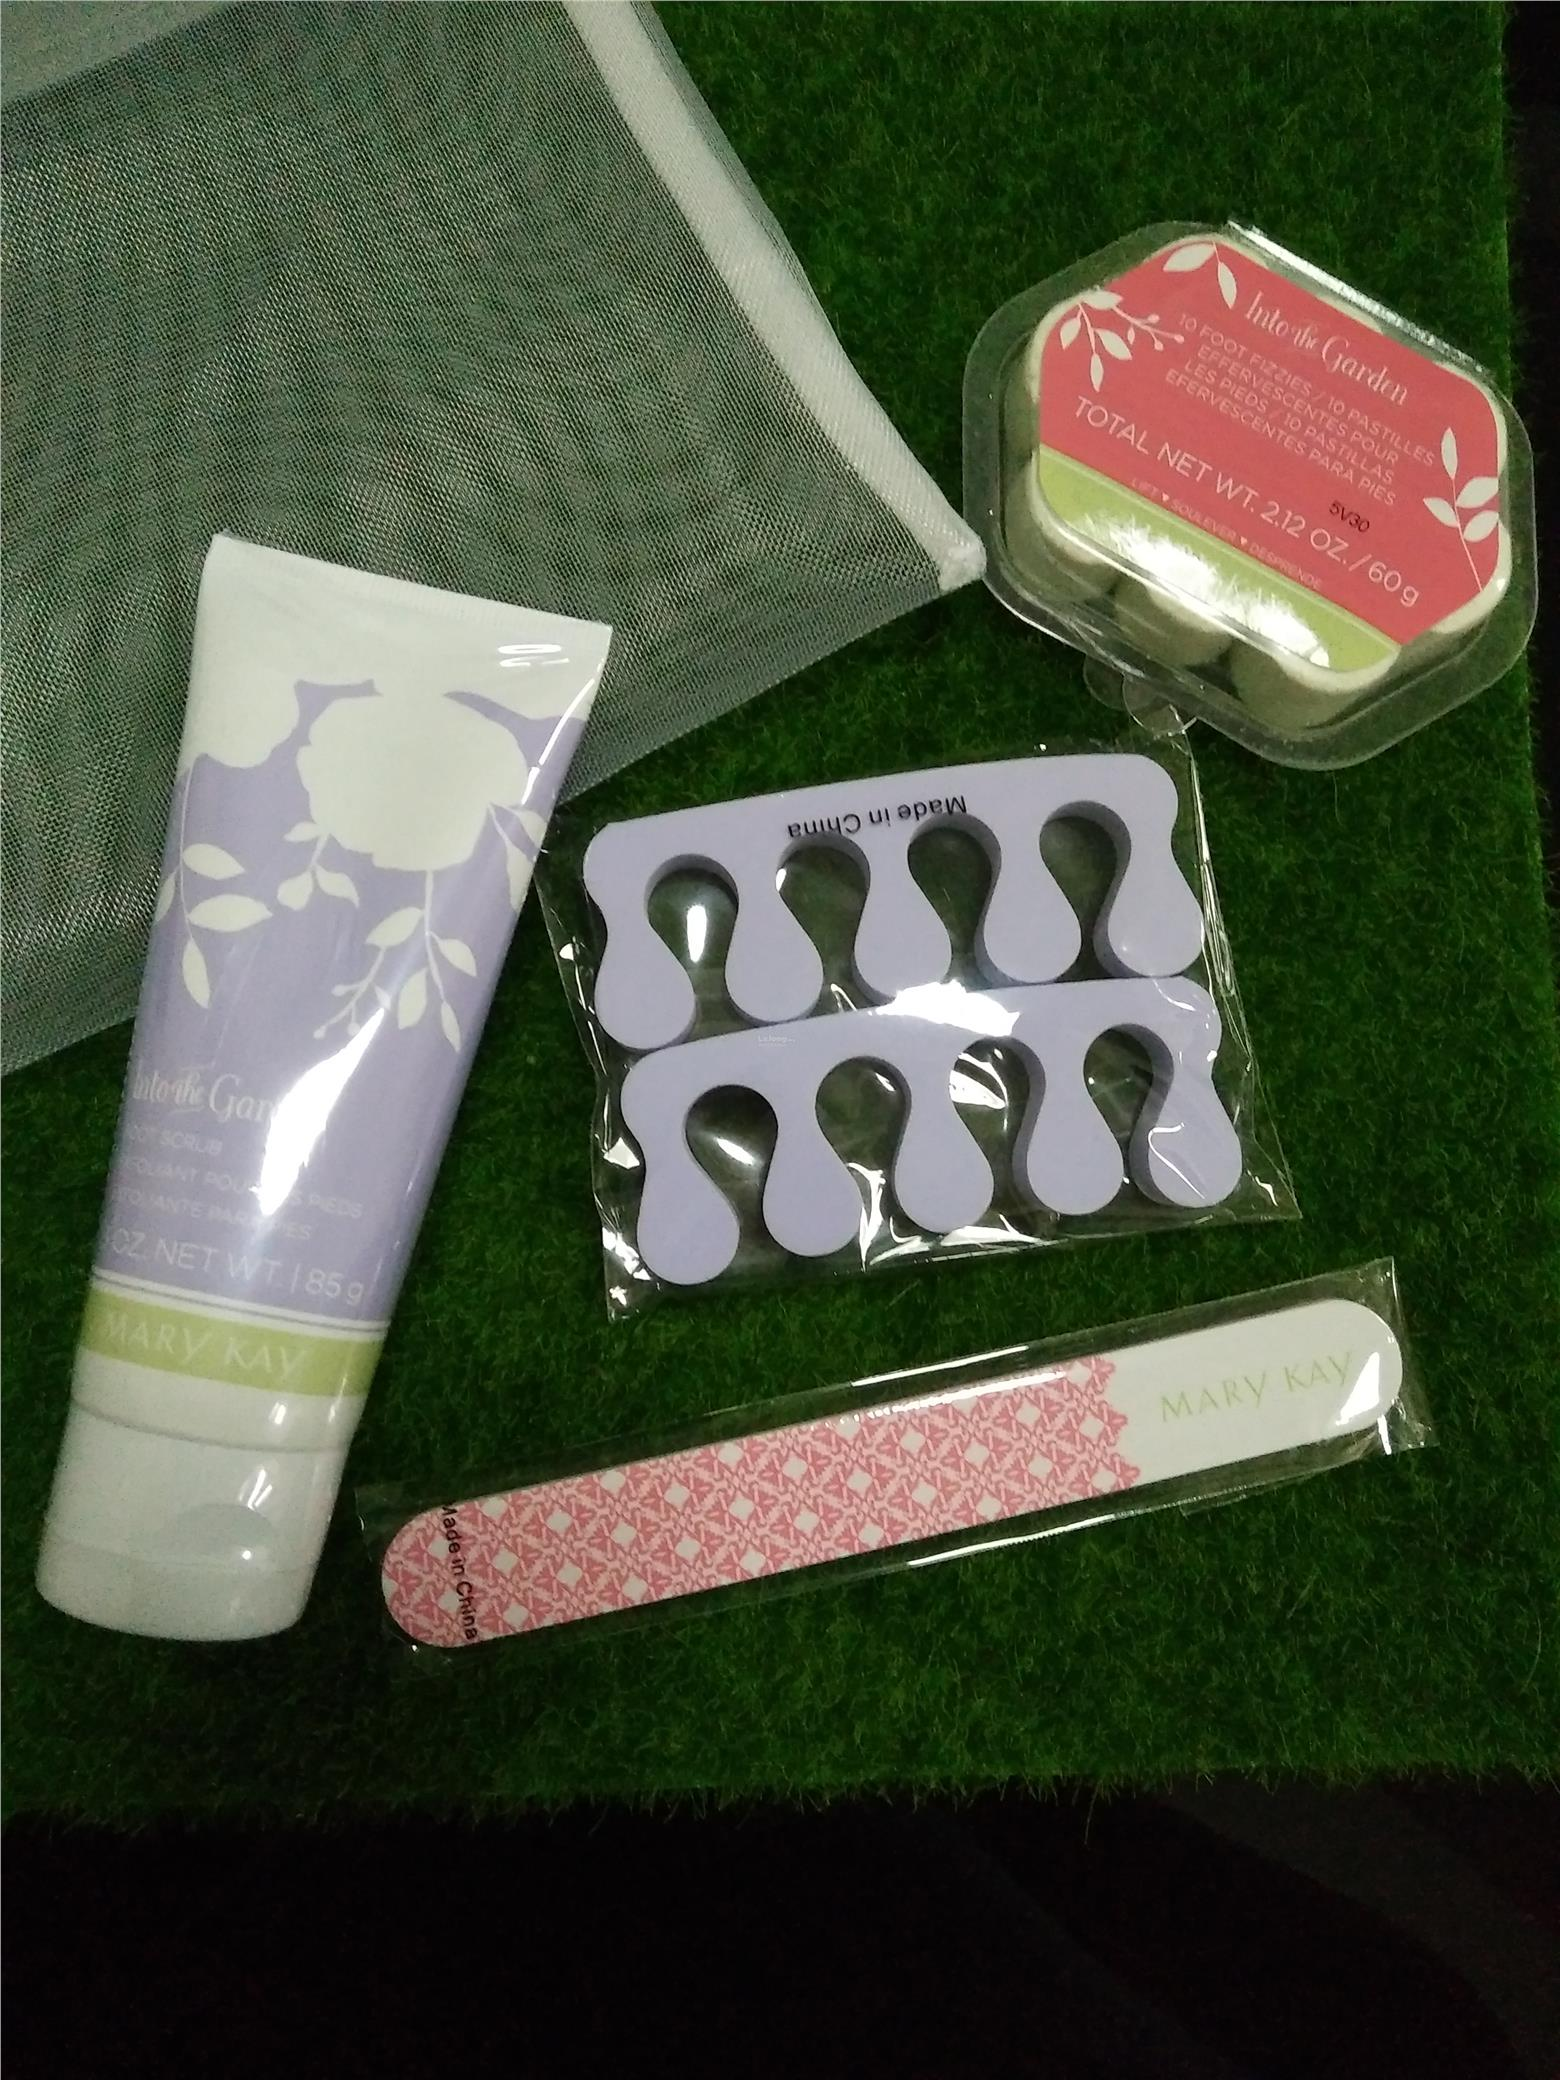 Limited-Edition Into The Garden Pedicure Set